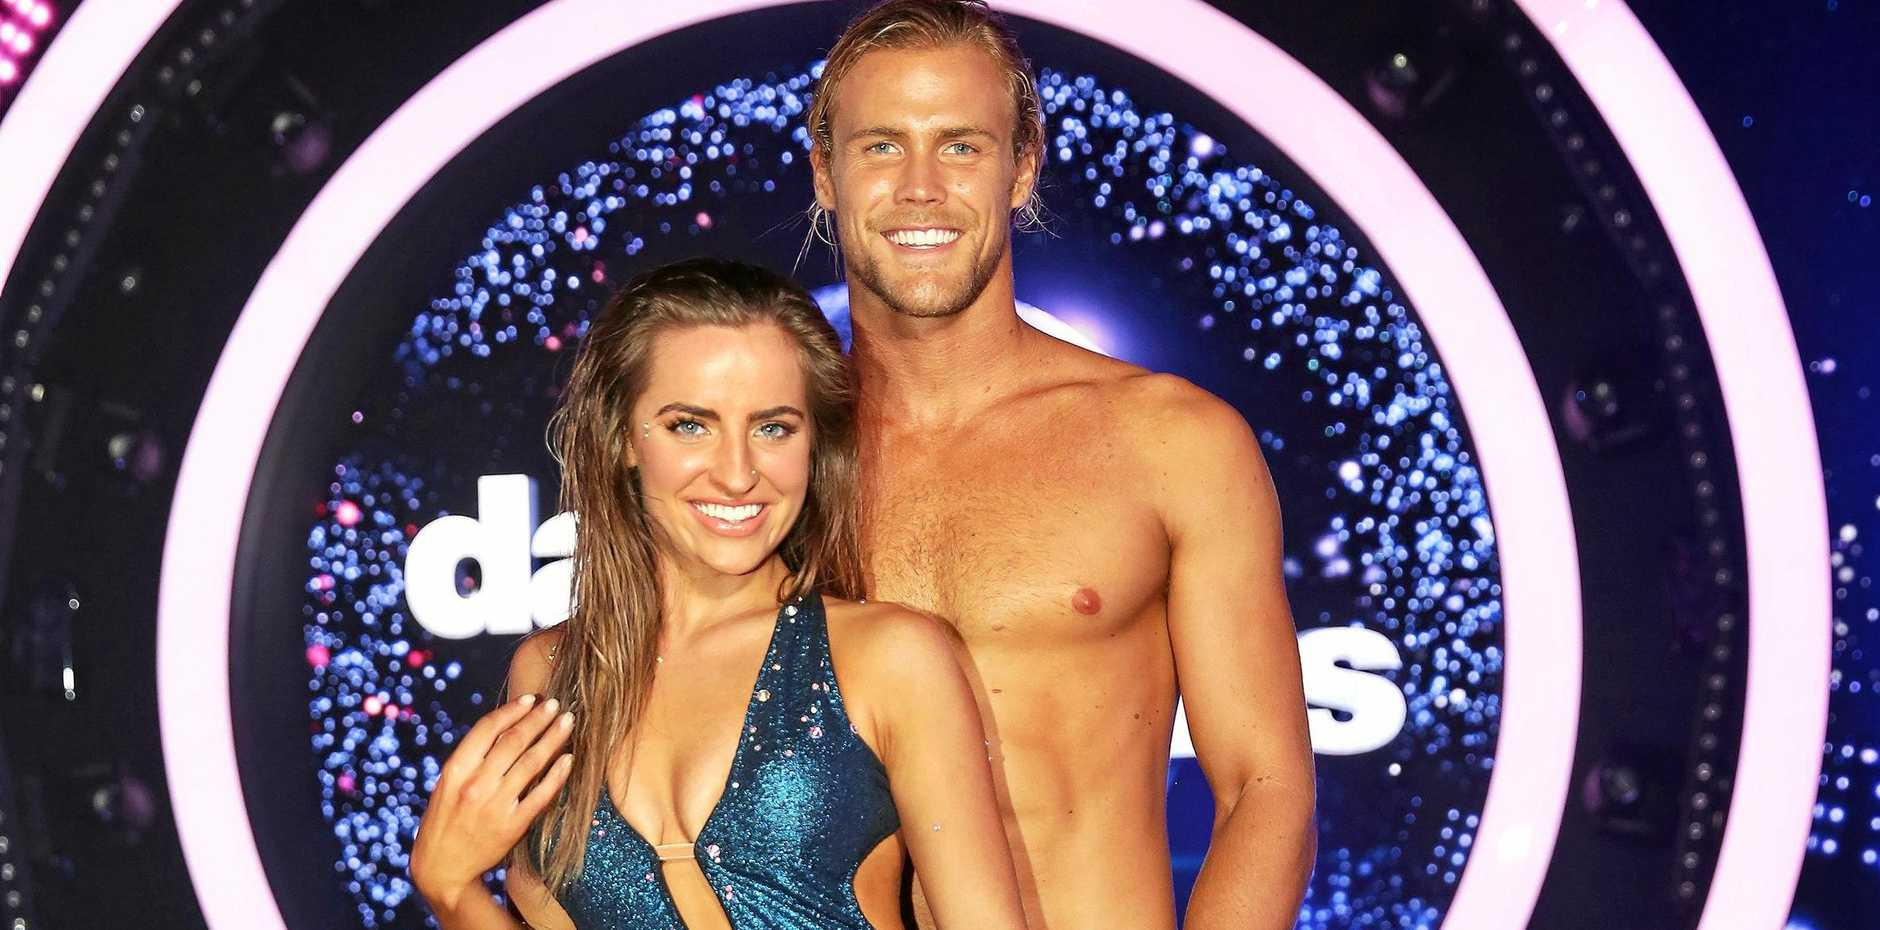 Jett Kenny has finally found his feet on Dancing With The Stars, thanks to his dance partner Lily Cornish.